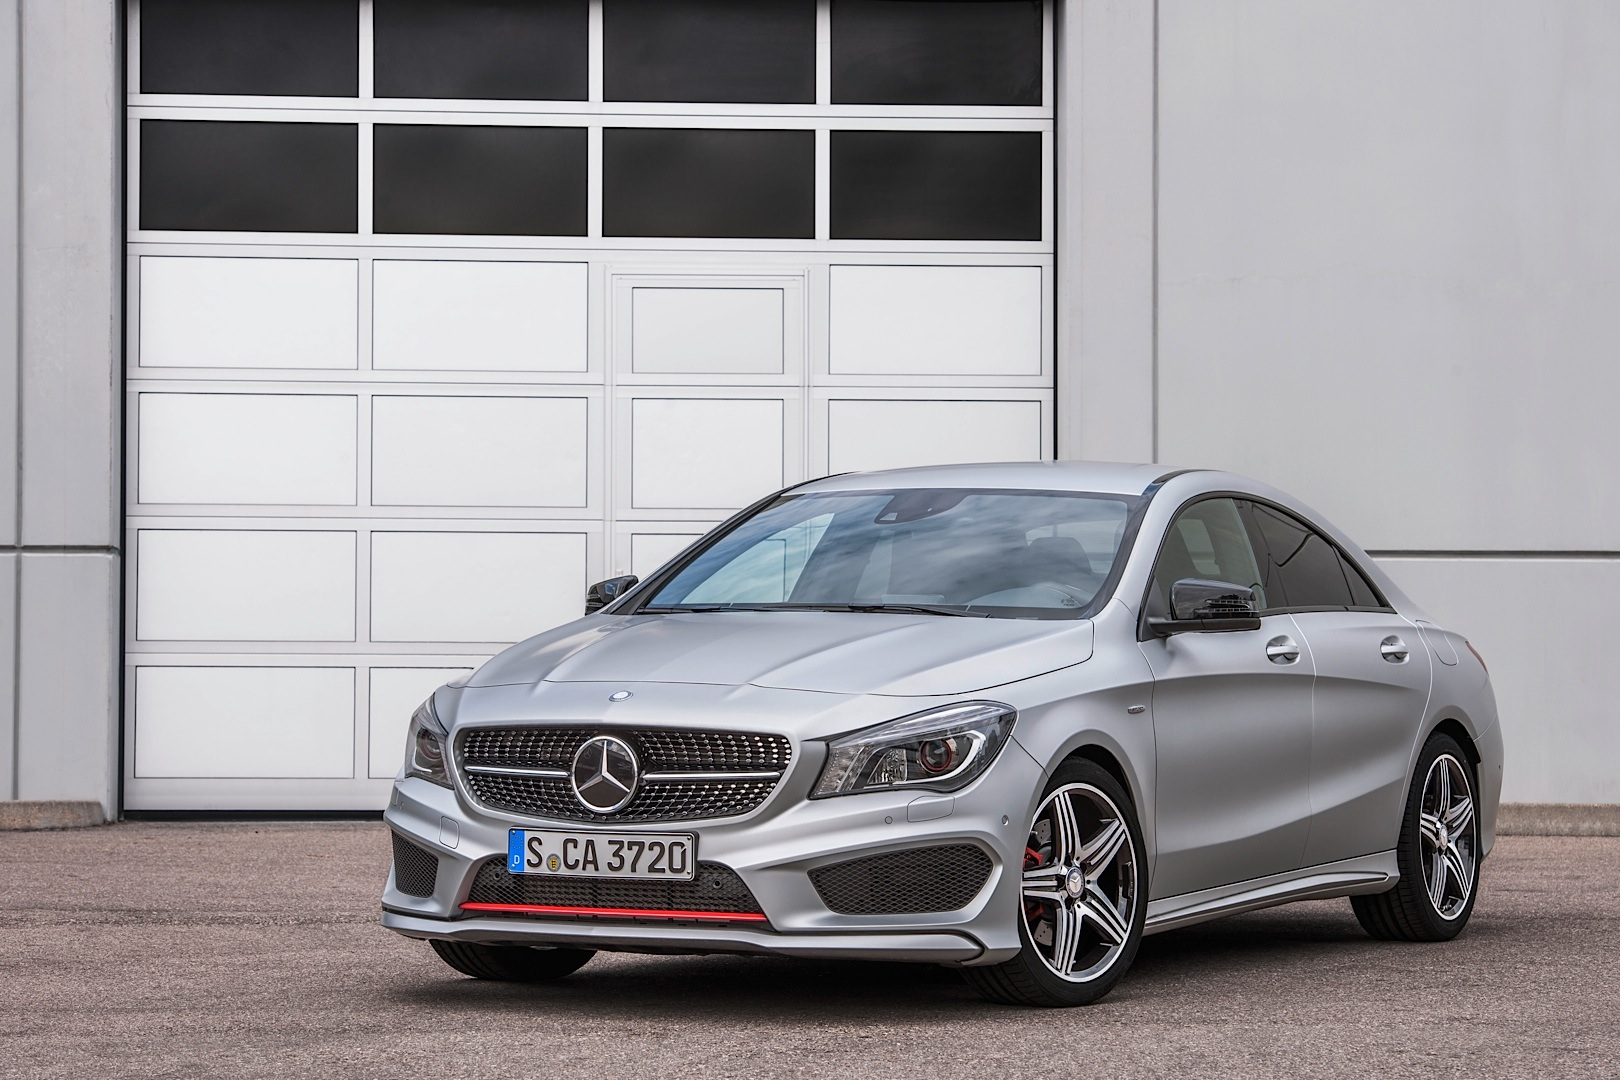 Mercedes benz launches the cla 250 sport version for Sporty mercedes benz